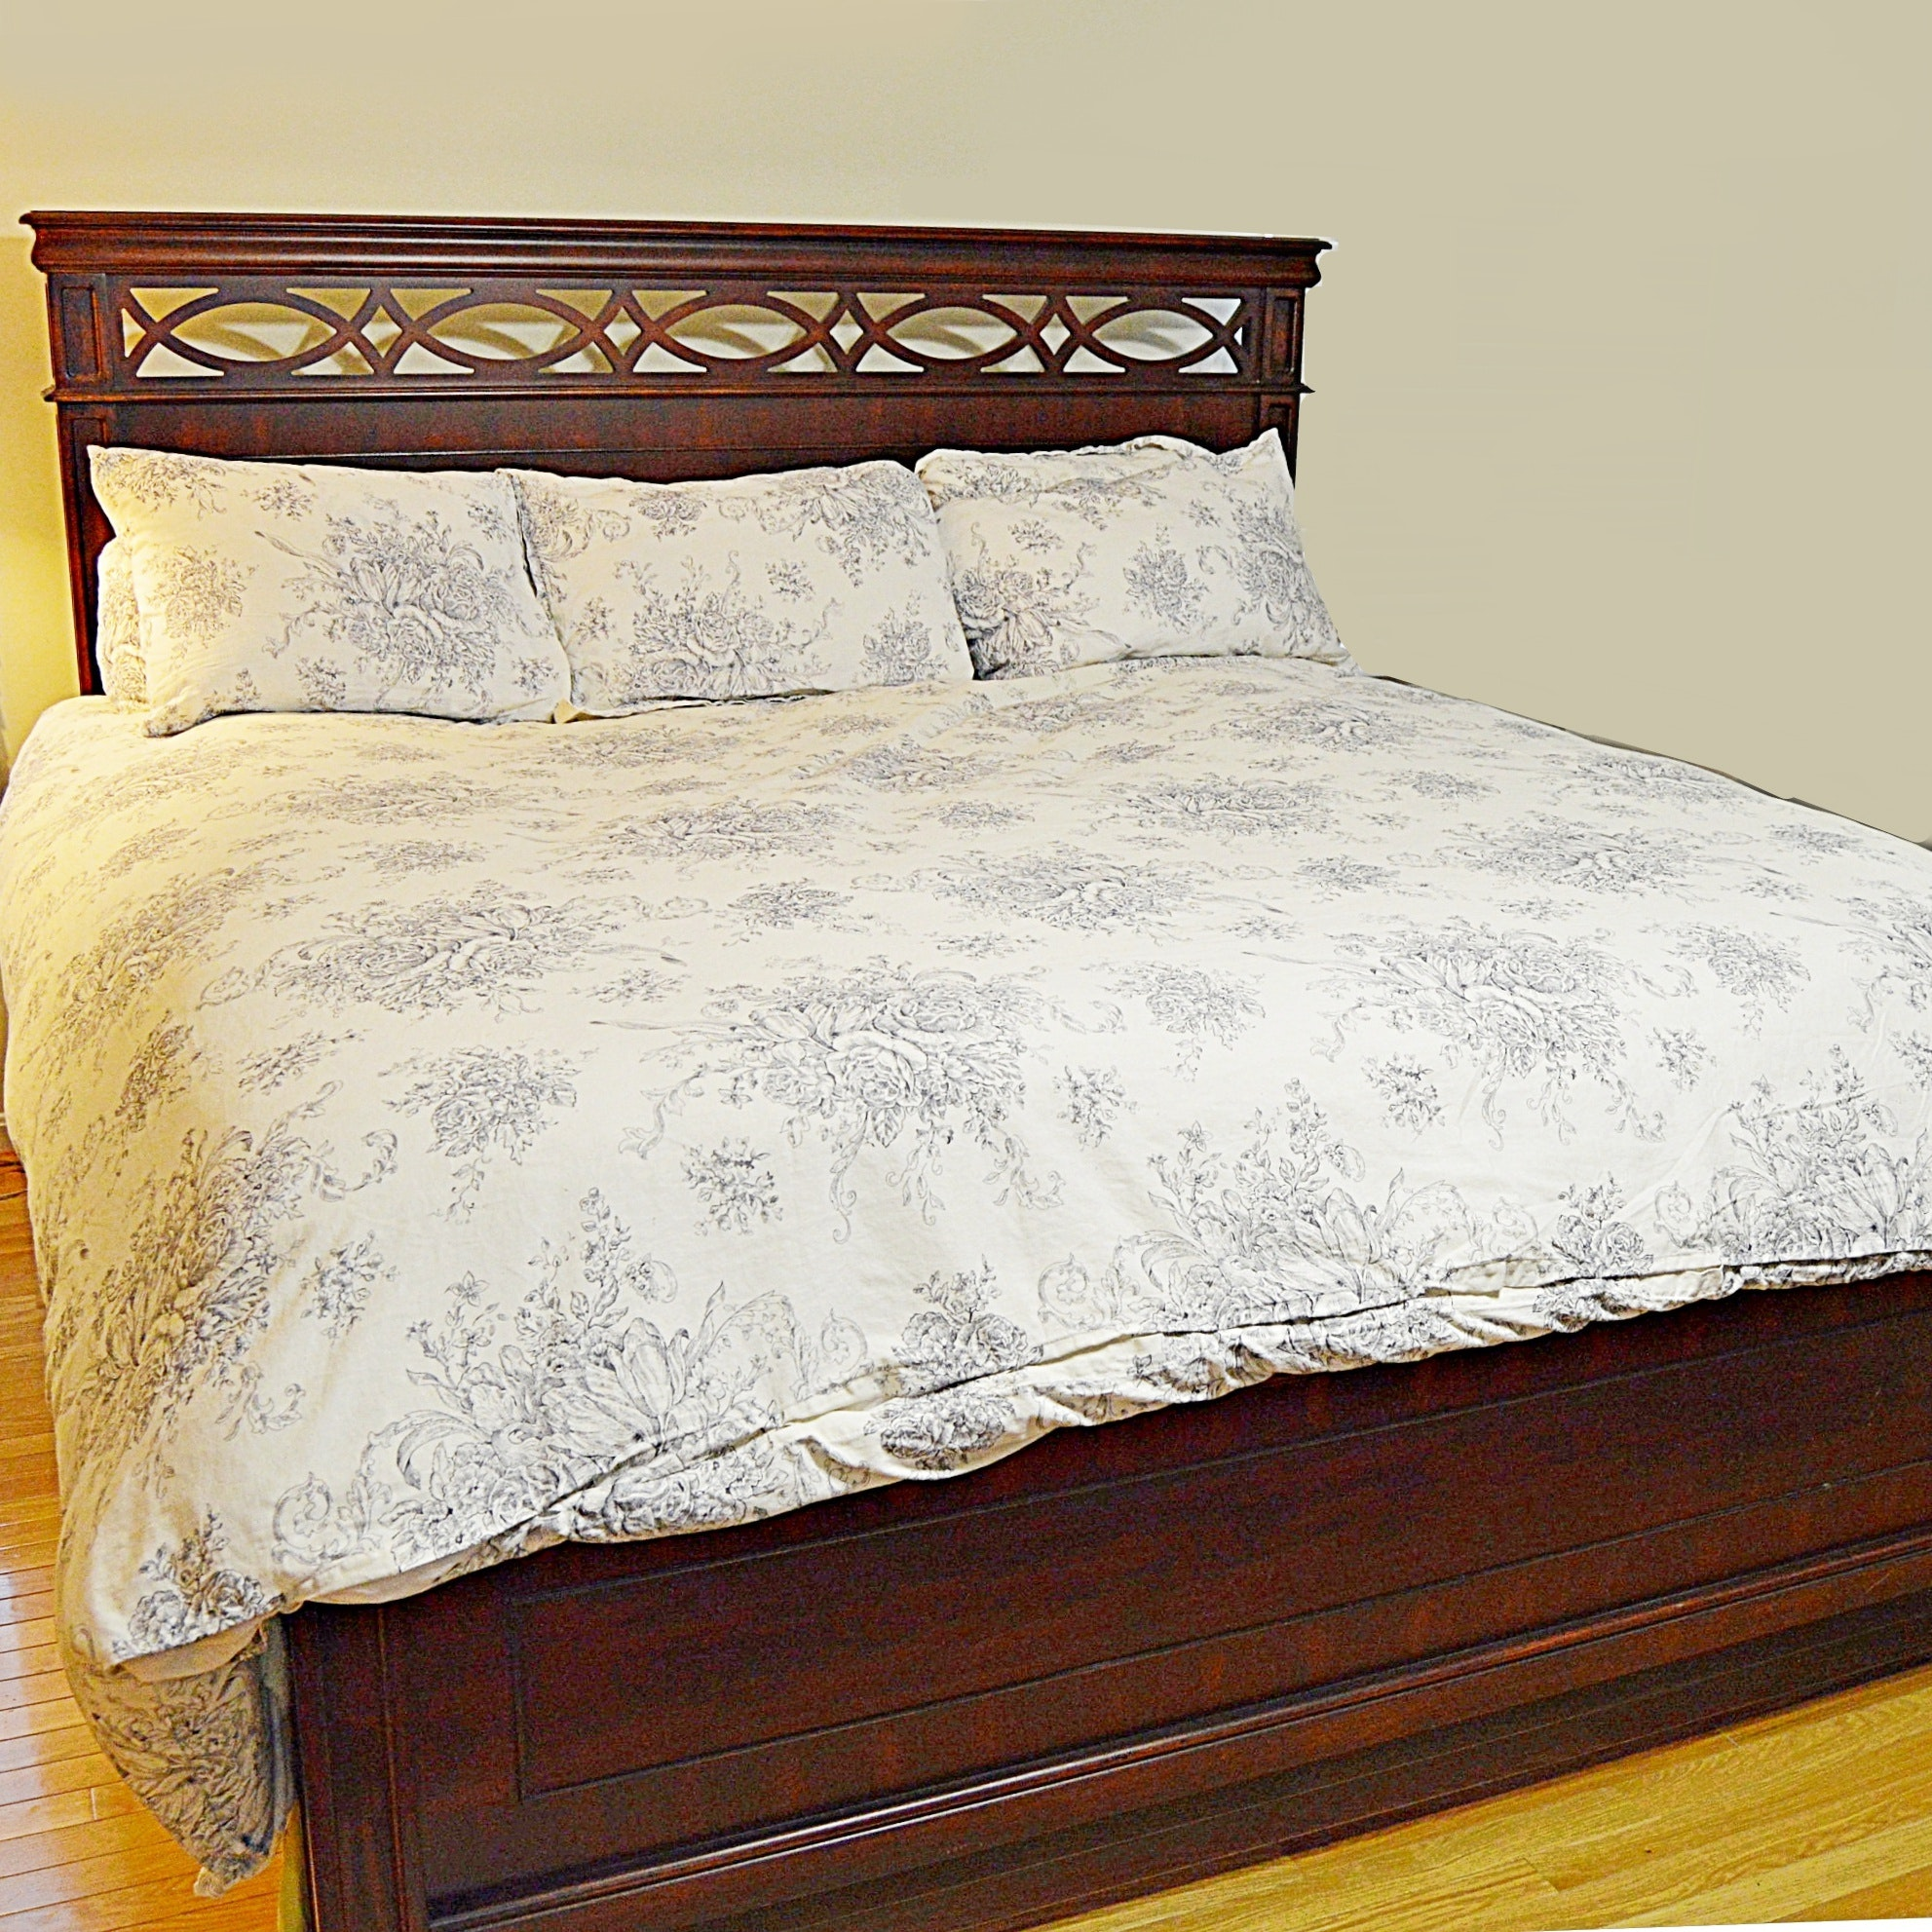 Chippendale Style Mahogany Bed with Linens, King Size